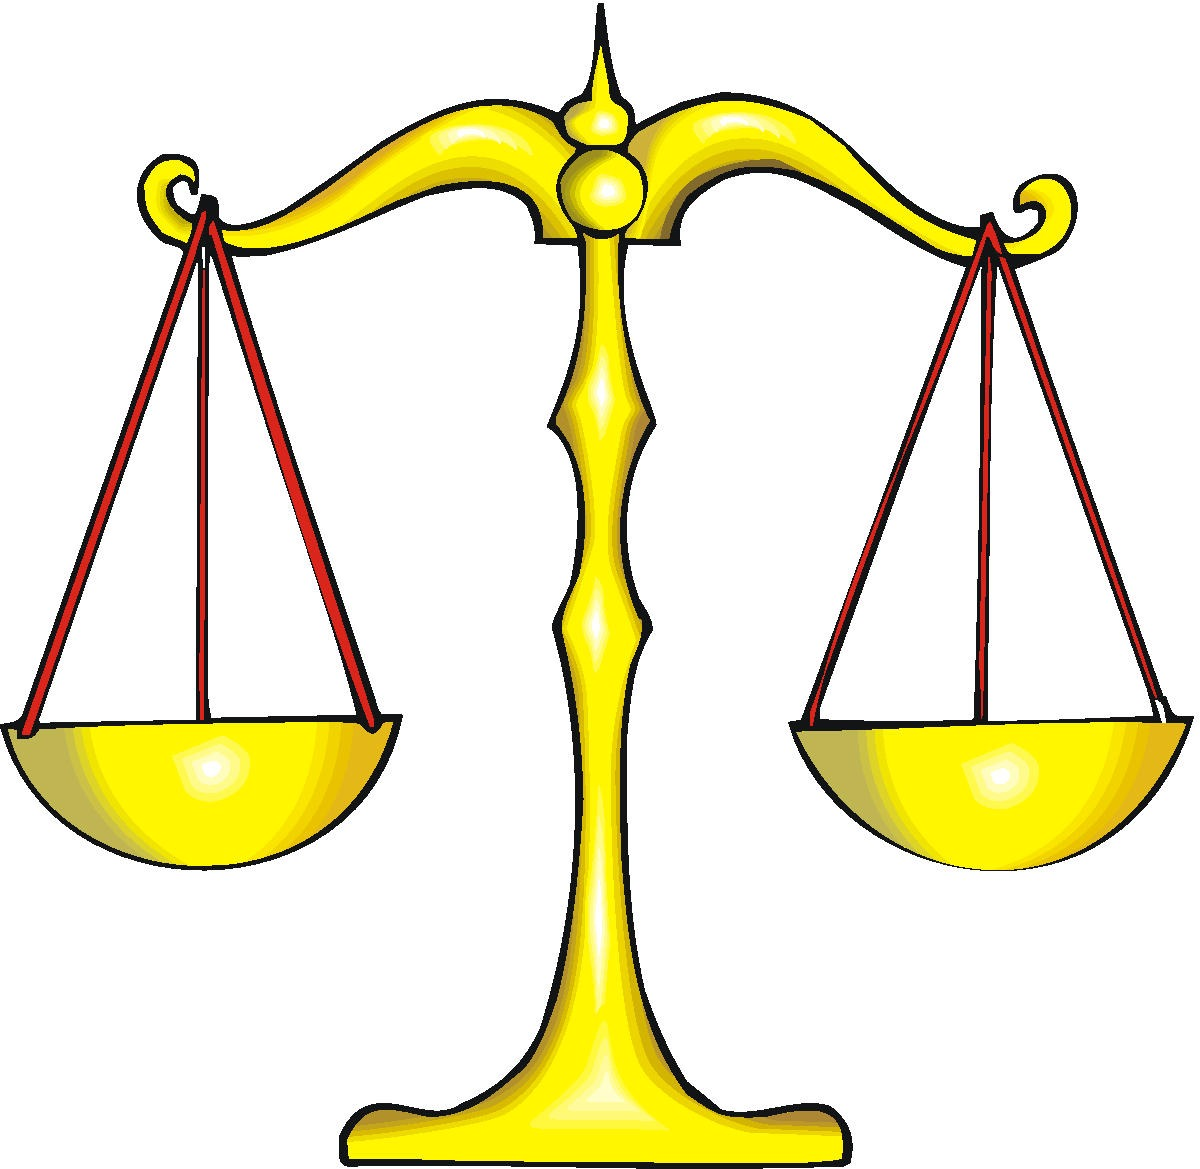 Balanced scales clipart.